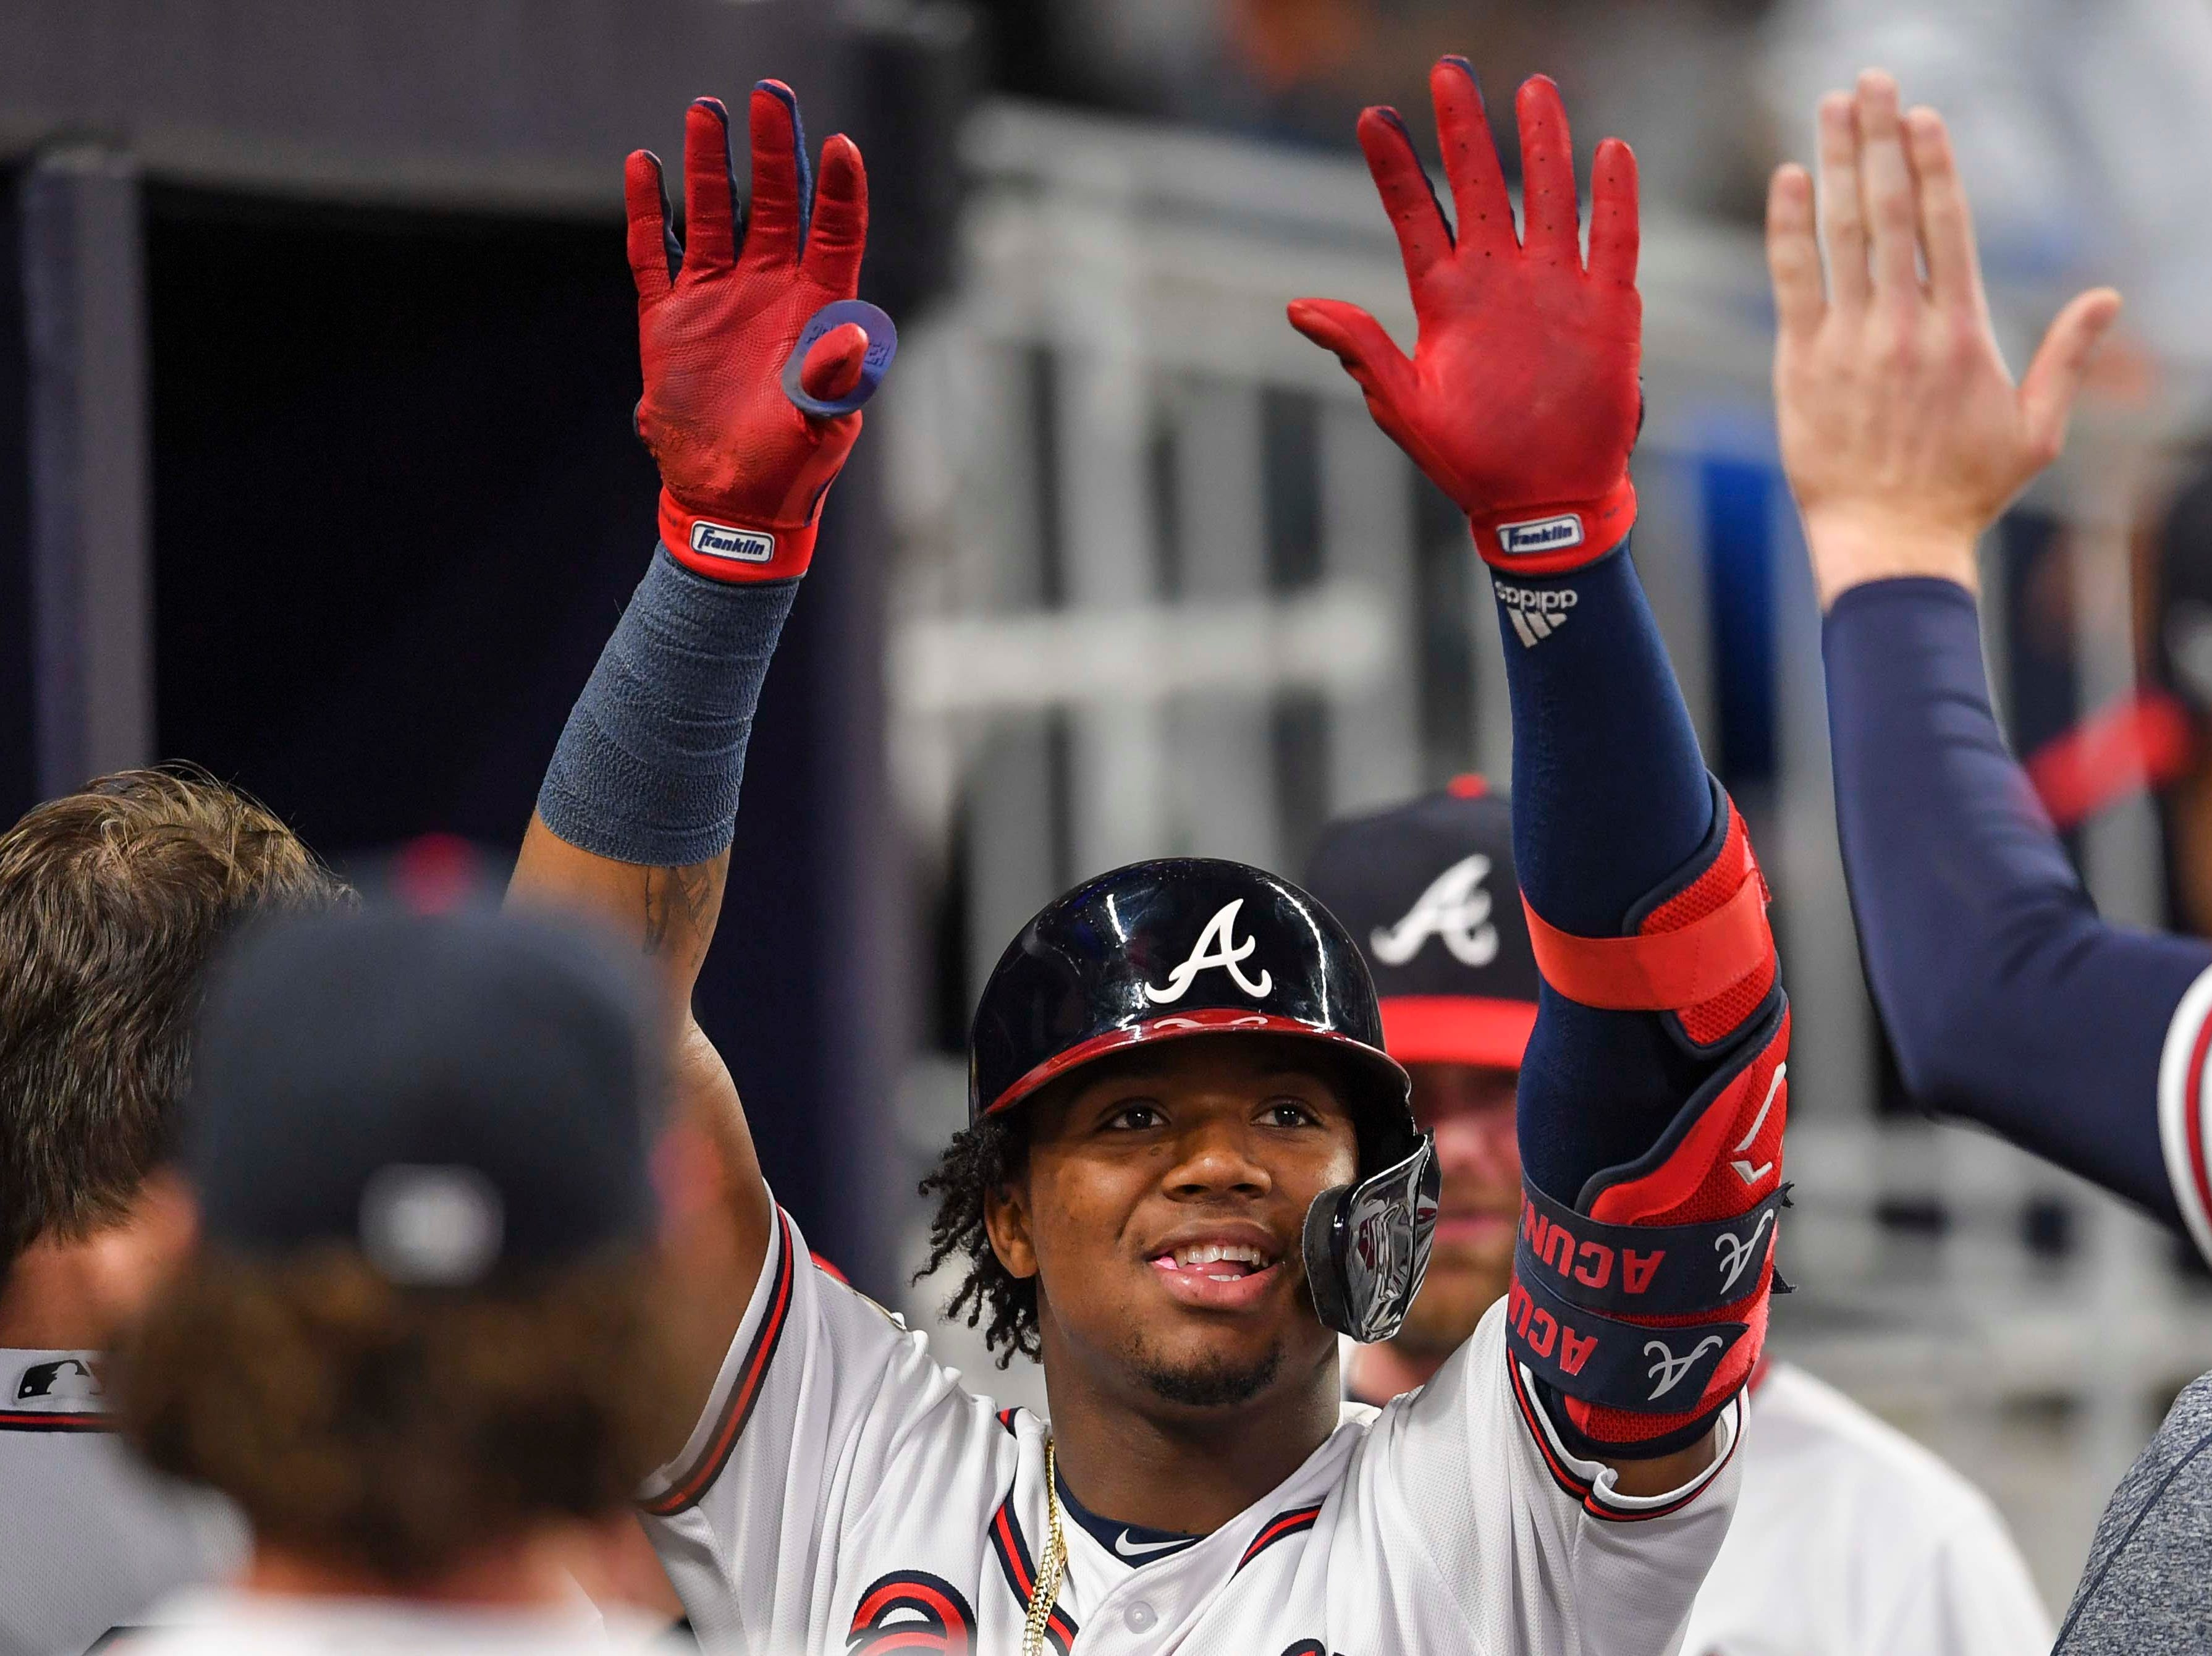 Apr 16, 2019; Atlanta, GA, USA; Atlanta Braves left fielder Ronald Acuna Jr. (13) gets high fives after hitting a home run against the Arizona Diamondbacks during the fourth inning at SunTrust Park. Mandatory Credit: Dale Zanine-USA TODAY Sports